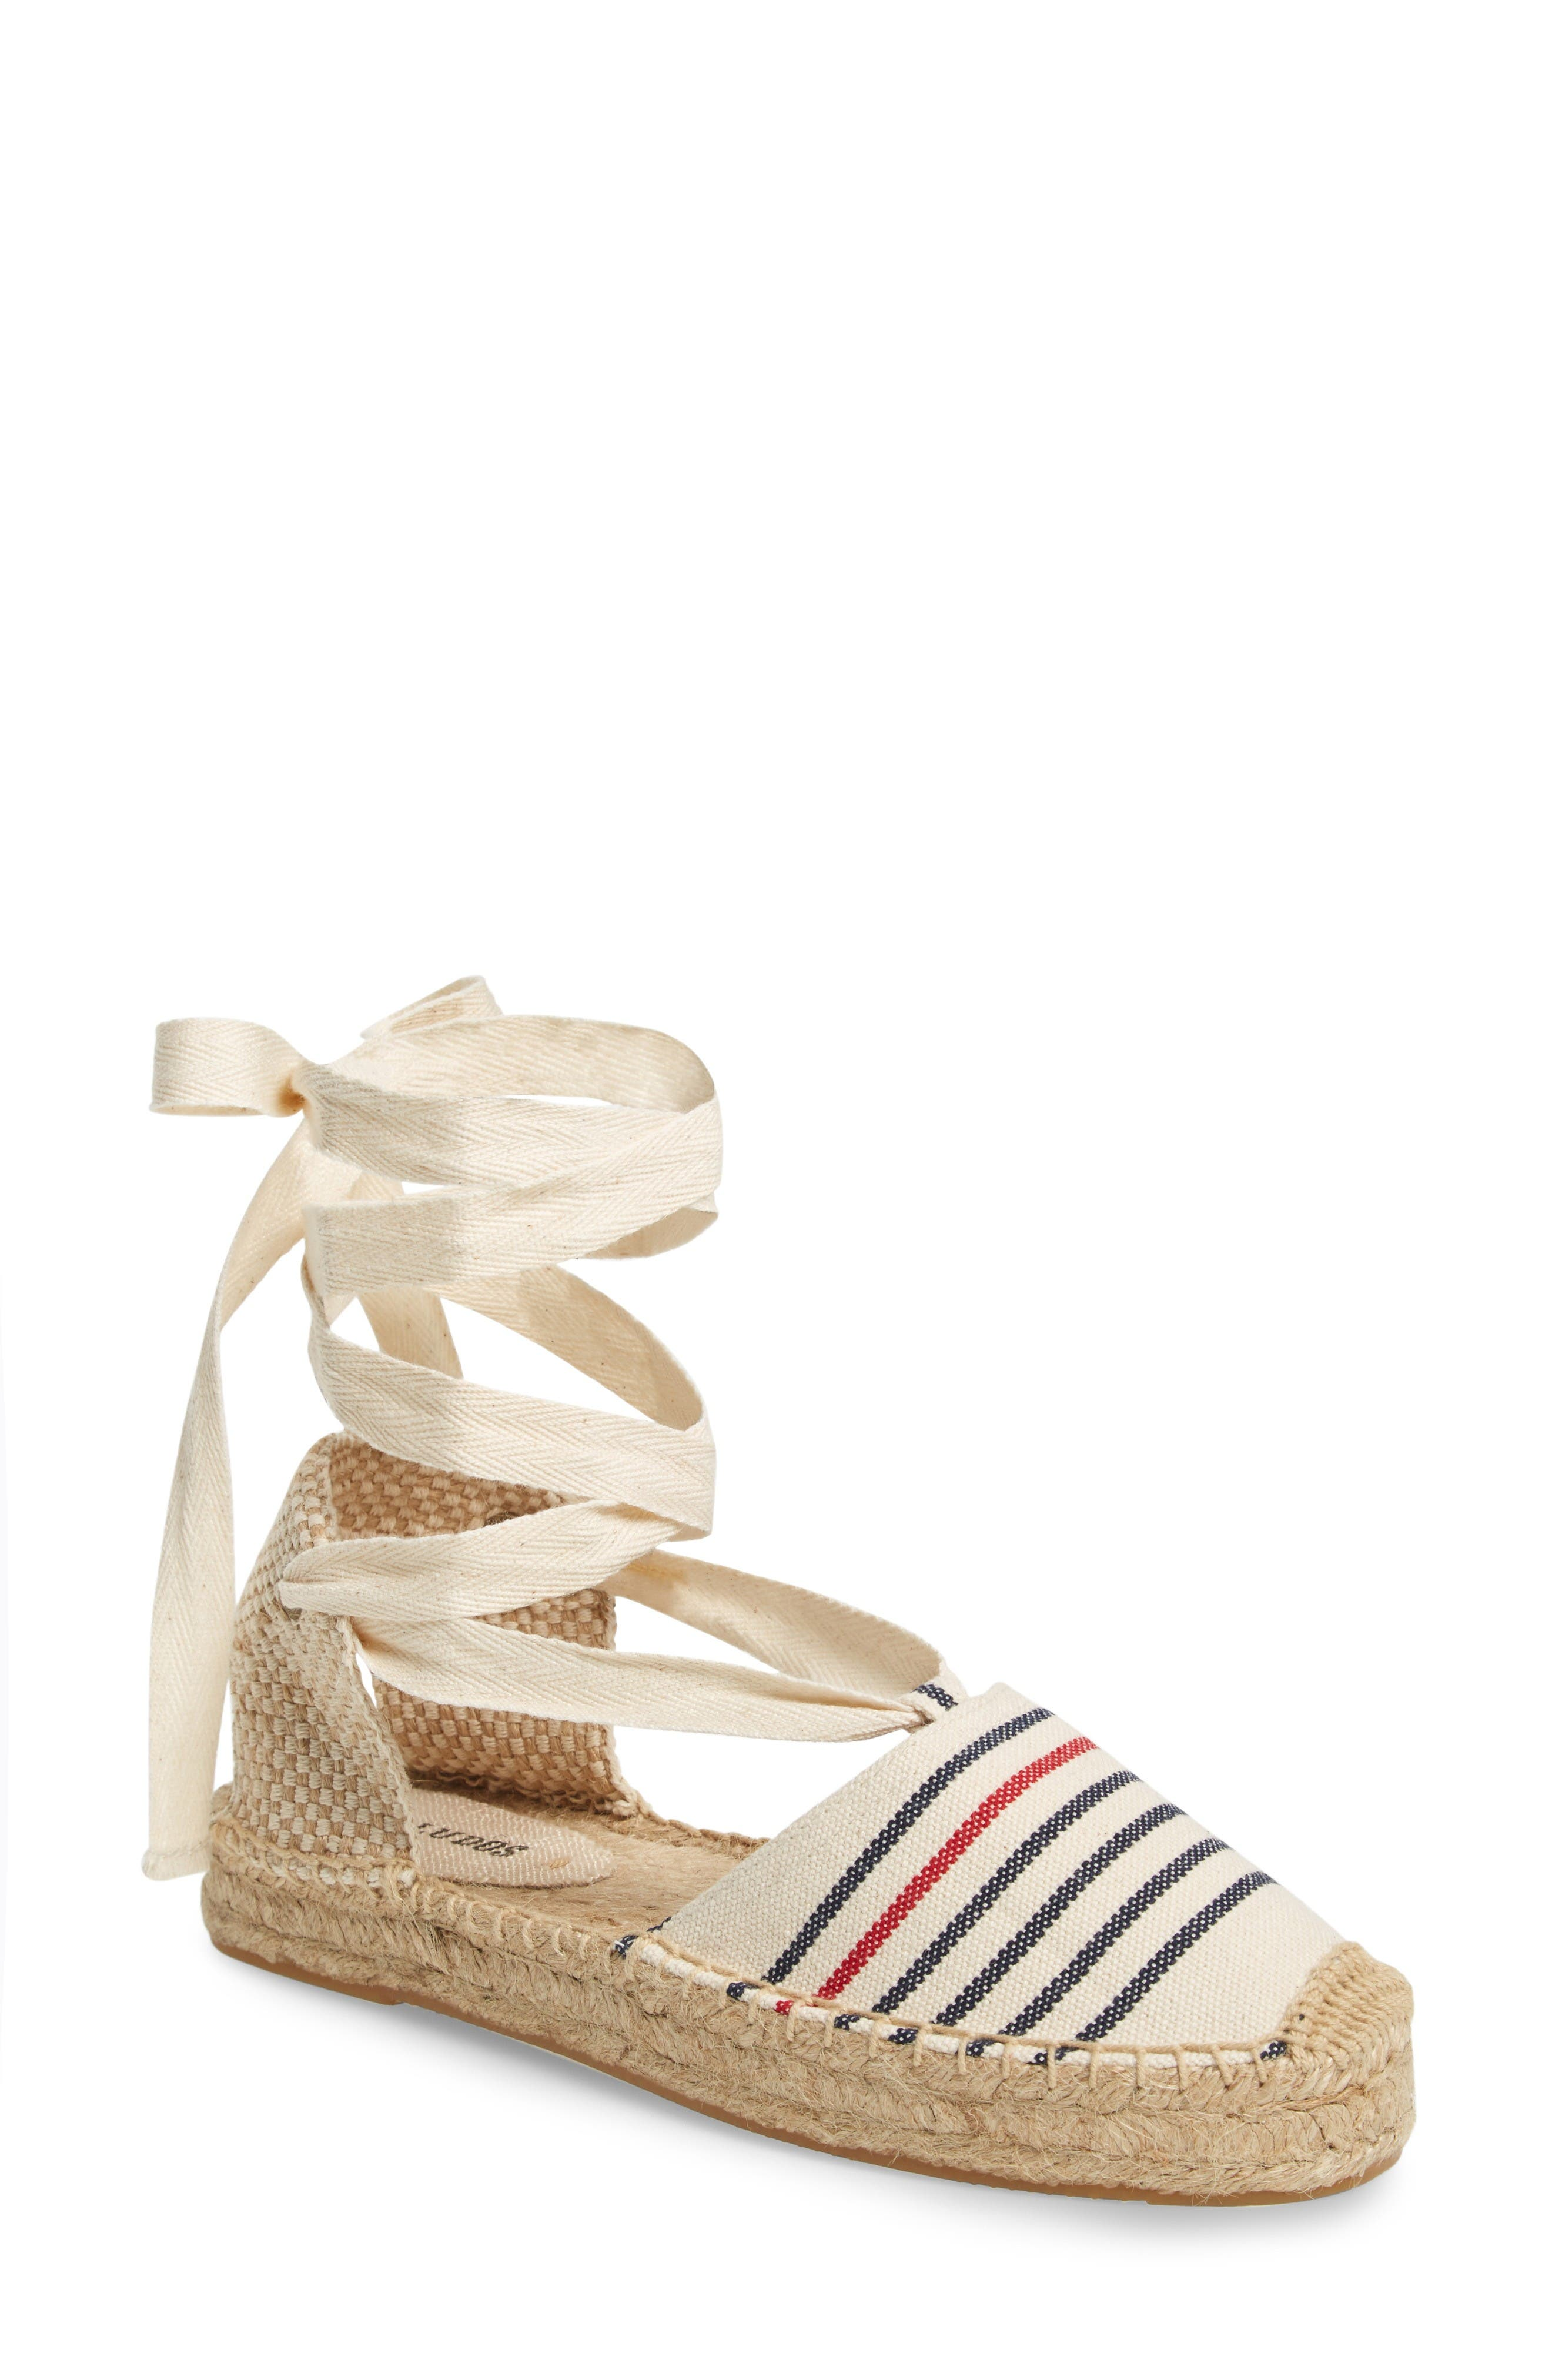 Gladiator Sandal,                         Main,                         color, Red Navy Canvas